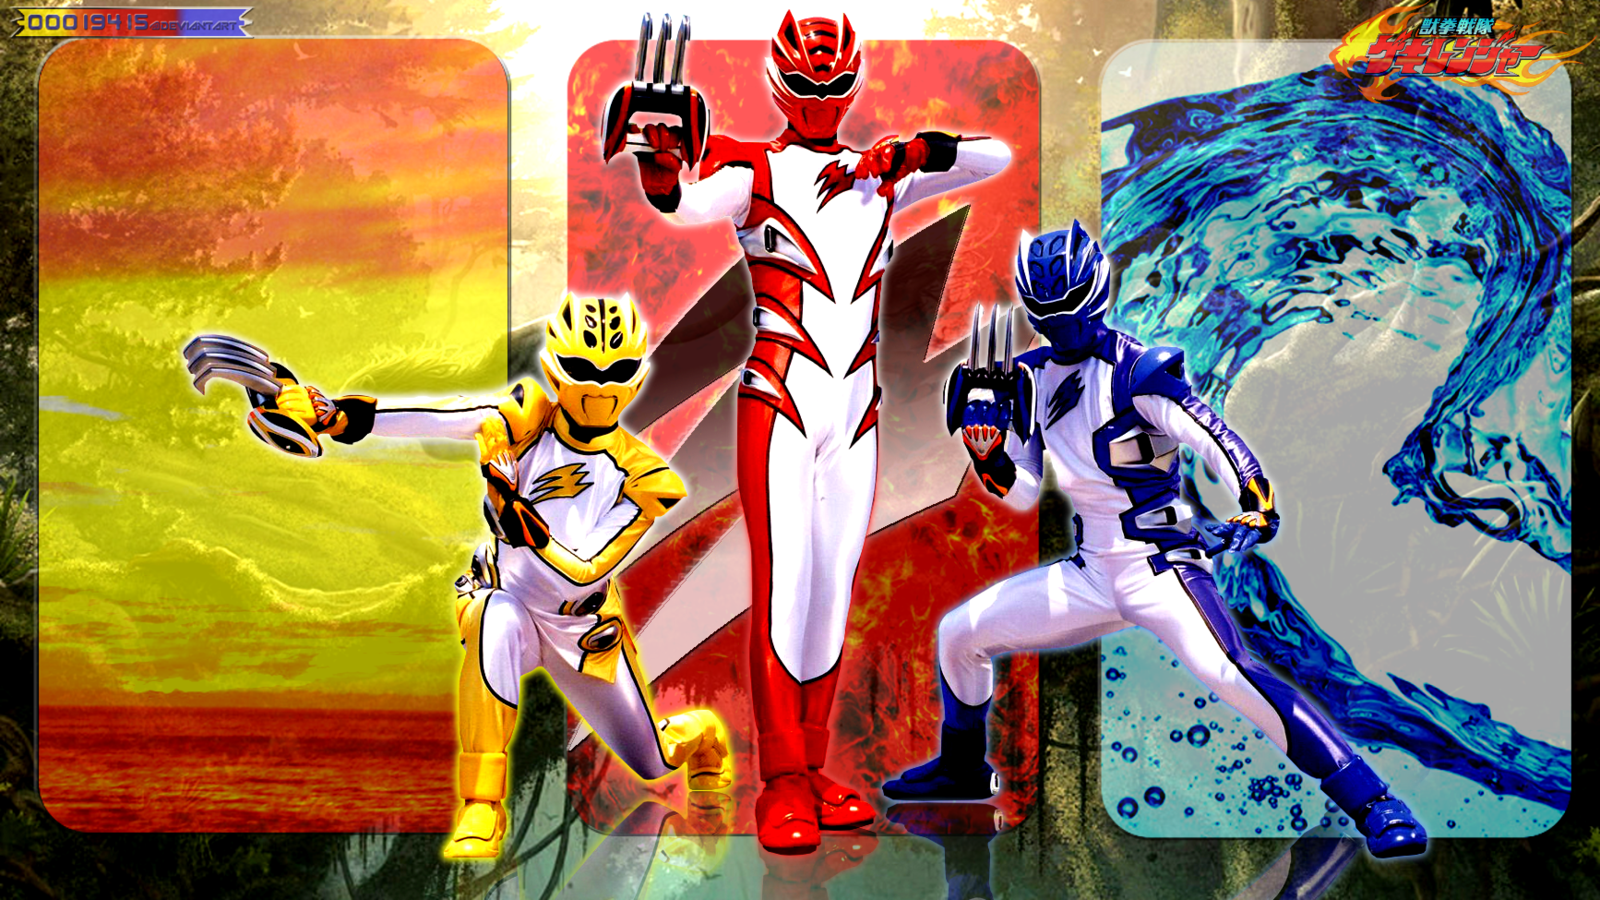 Power Rangers Jungle Fury images PRJF HD wallpaper and background photos